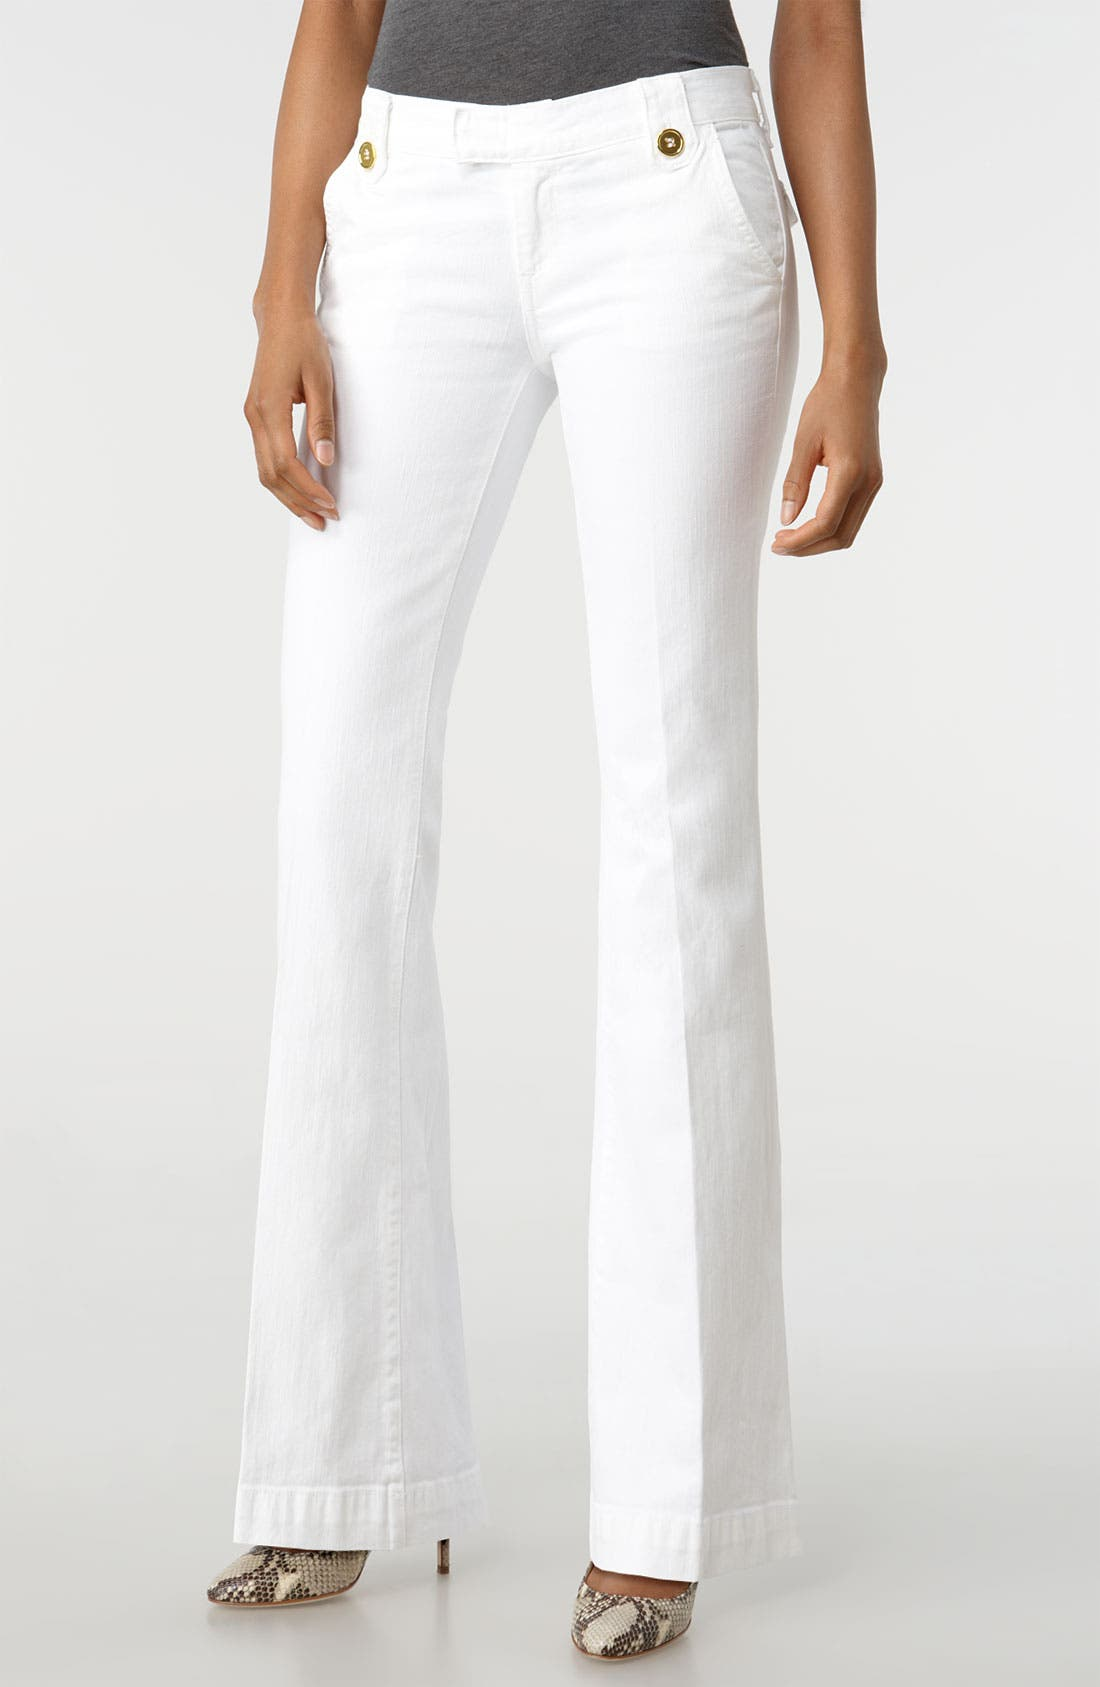 'Pascale' Stretch Trouser Jeans,                             Main thumbnail 1, color,                             100